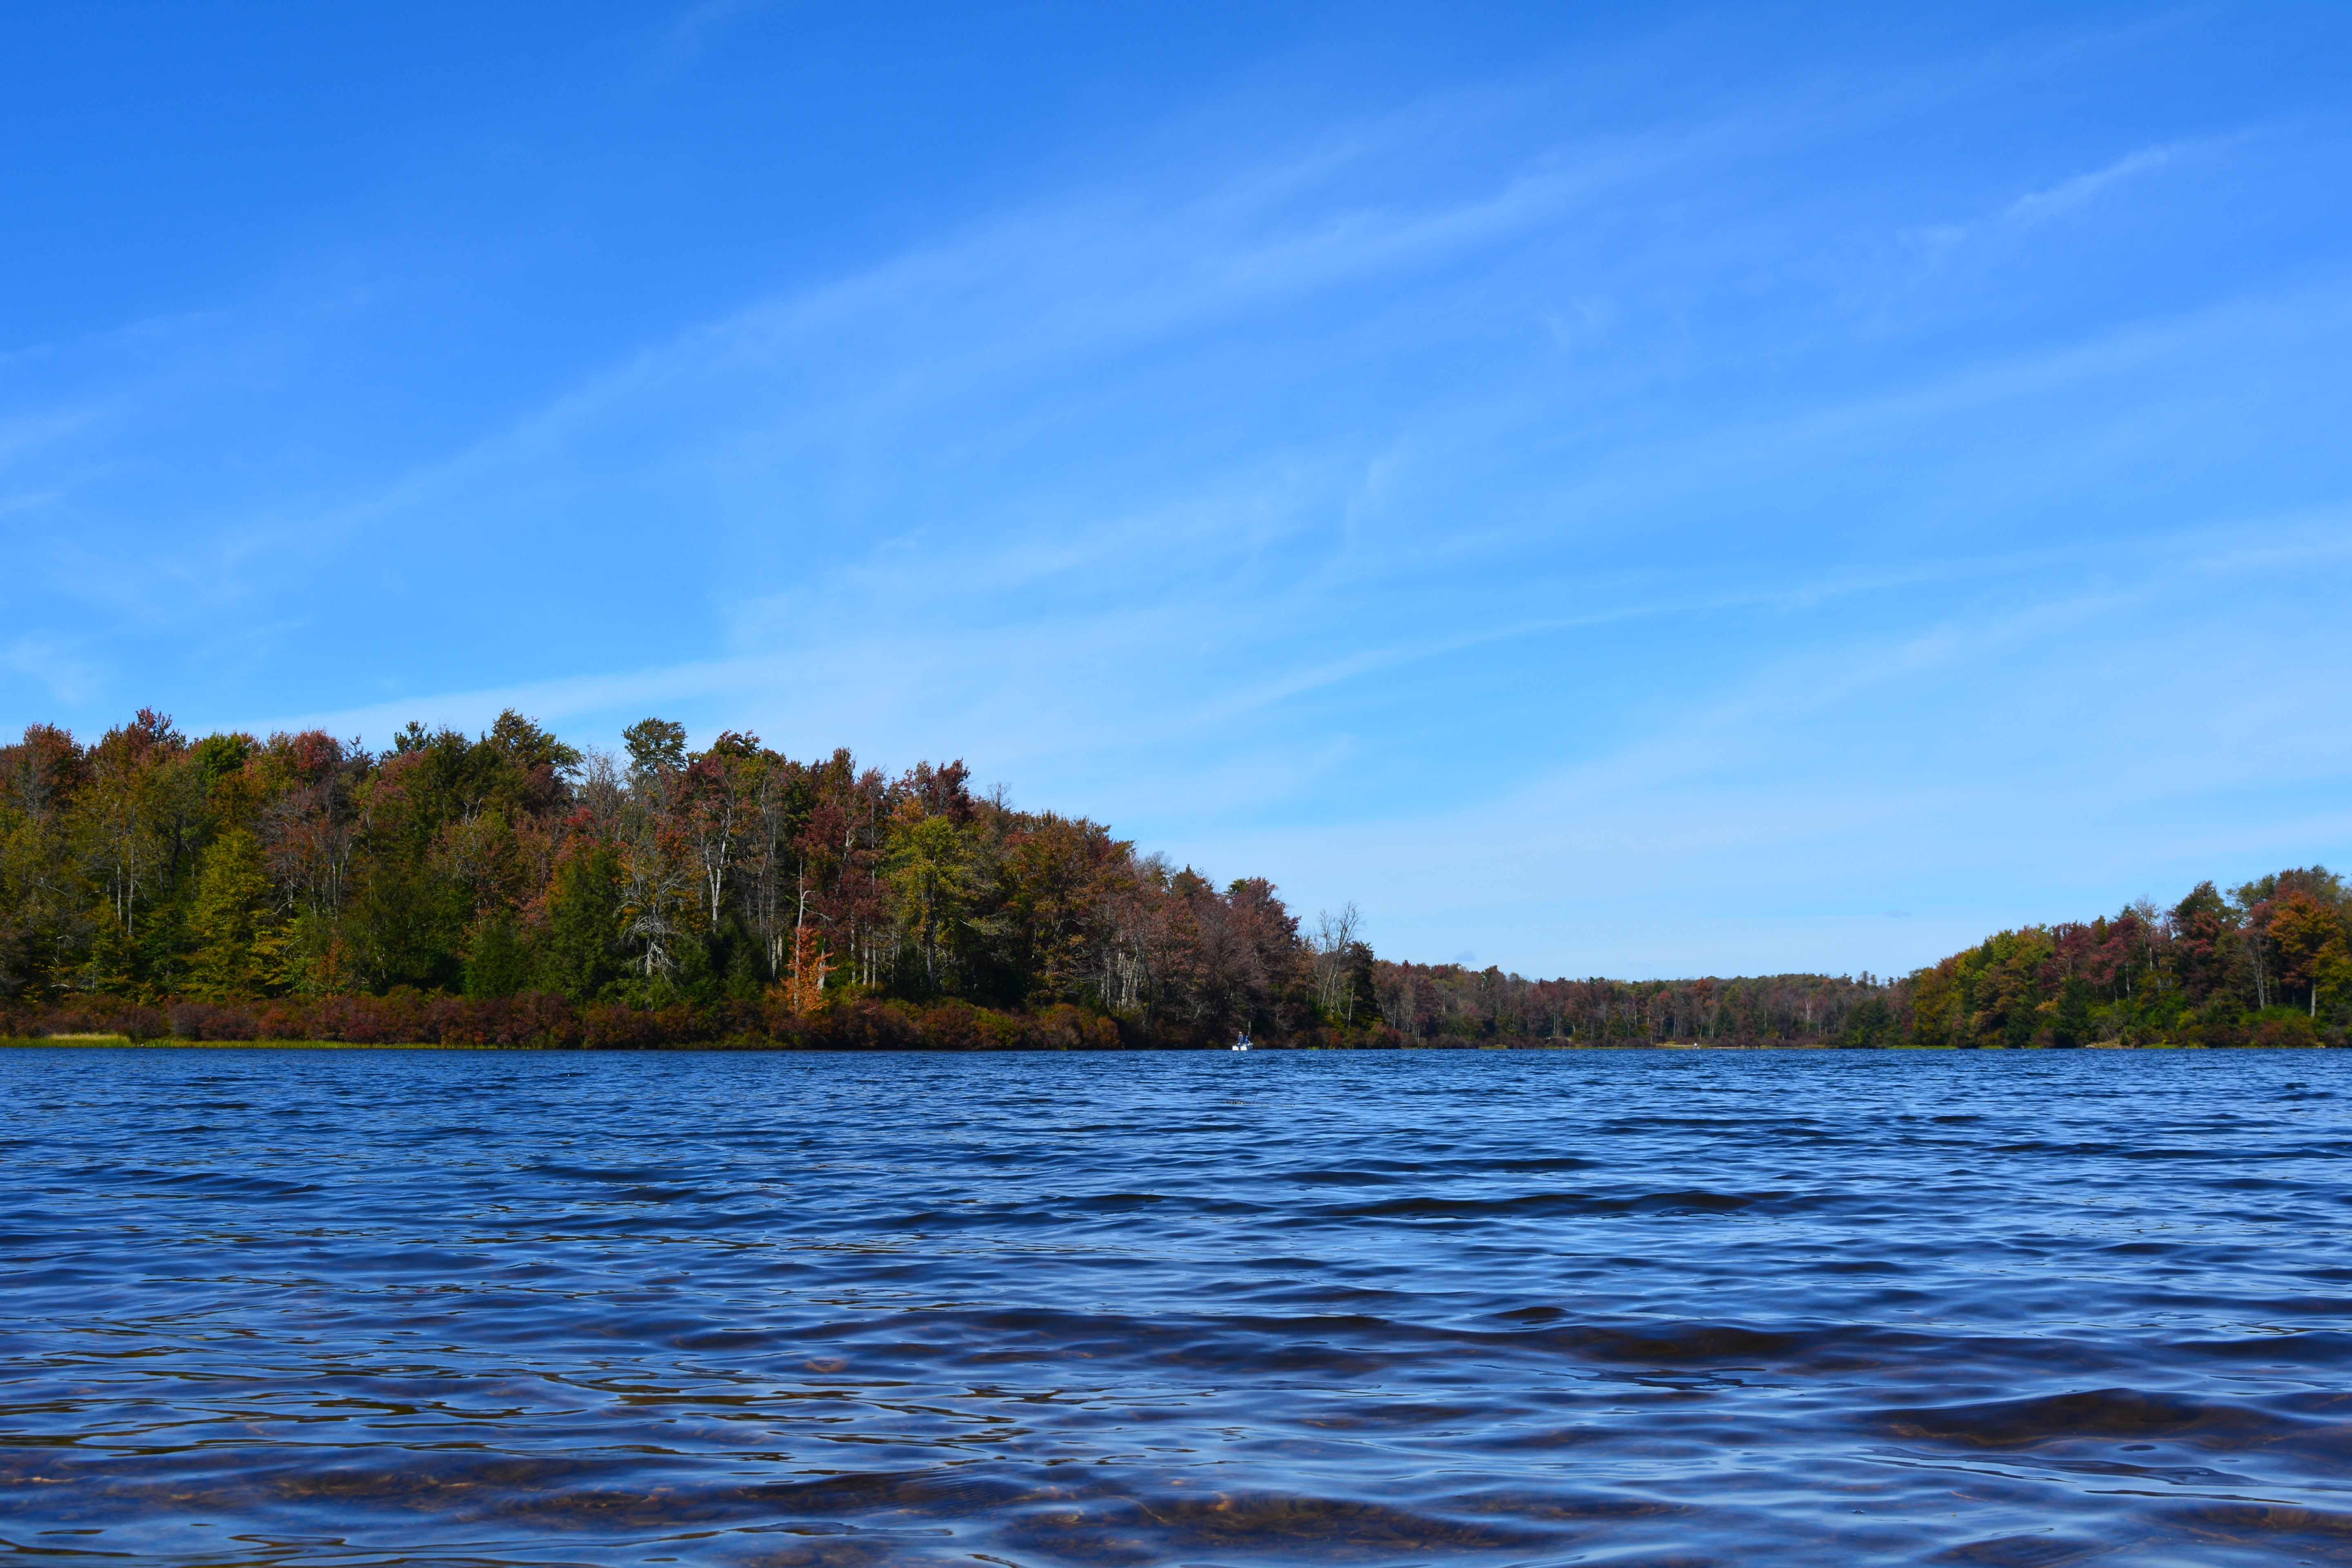 A view of a lake at Ricketts Glen State Park